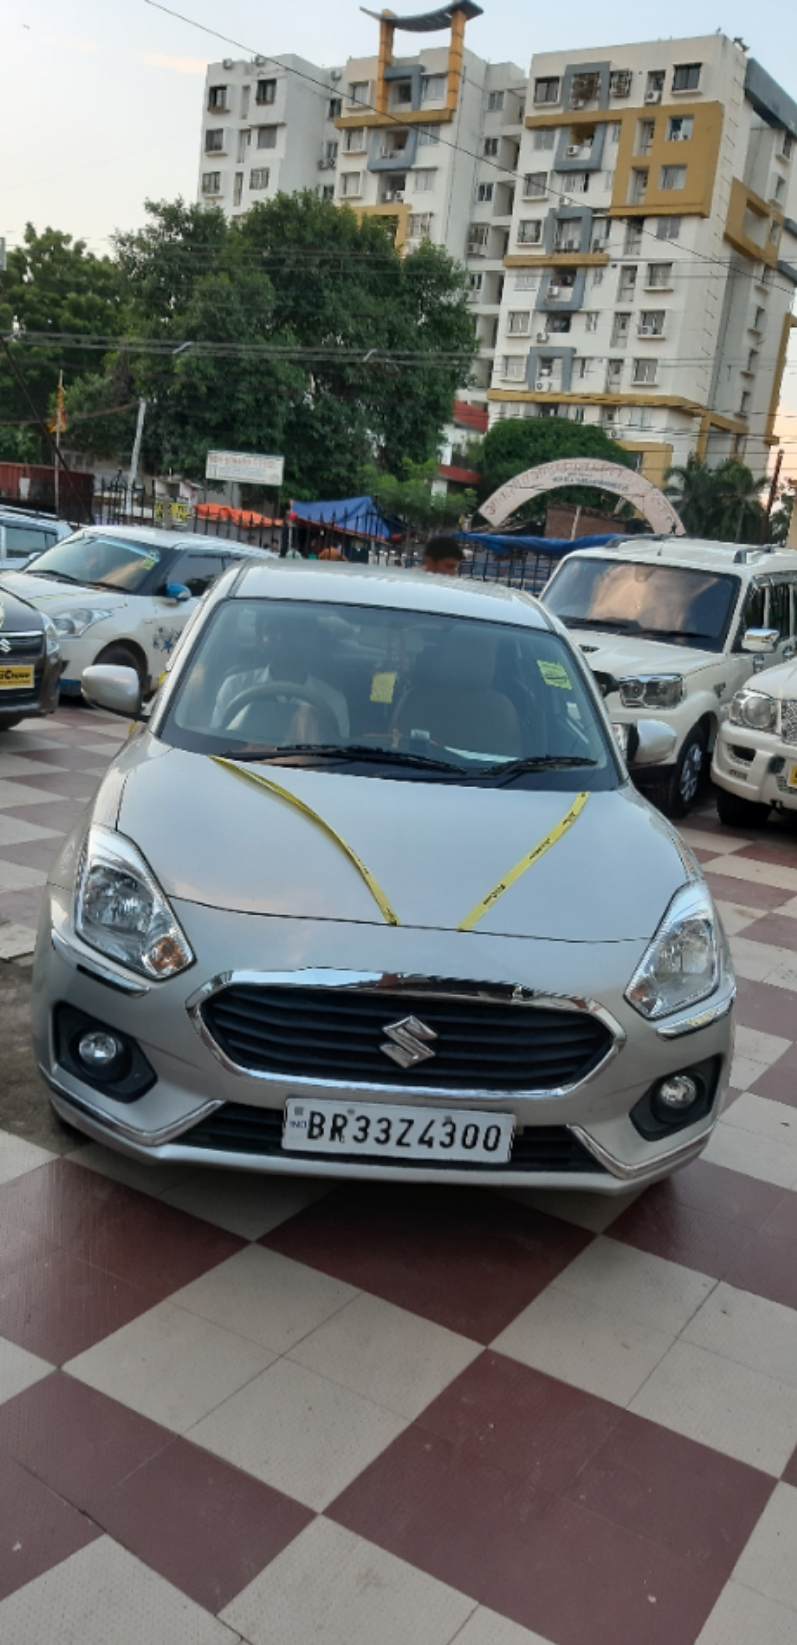 Used Cars In Patna - Second Hand Cars For Sale - Used Cars